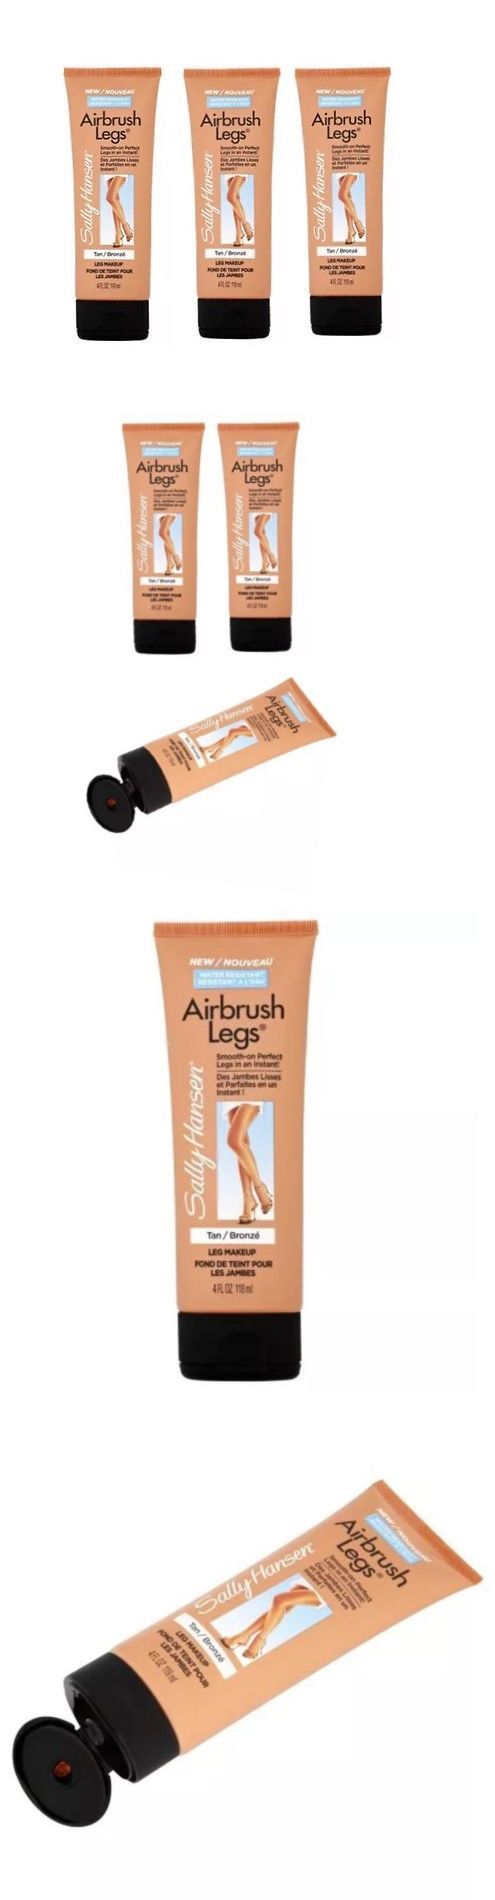 Other Sun Protection and Tanning: Sally Hansen Airbrush Legs Smooth On Tan Bronze - Leg Makeup 4 Oz Lot Of 3 -> BUY IT NOW ONLY: $38.97 on eBay!